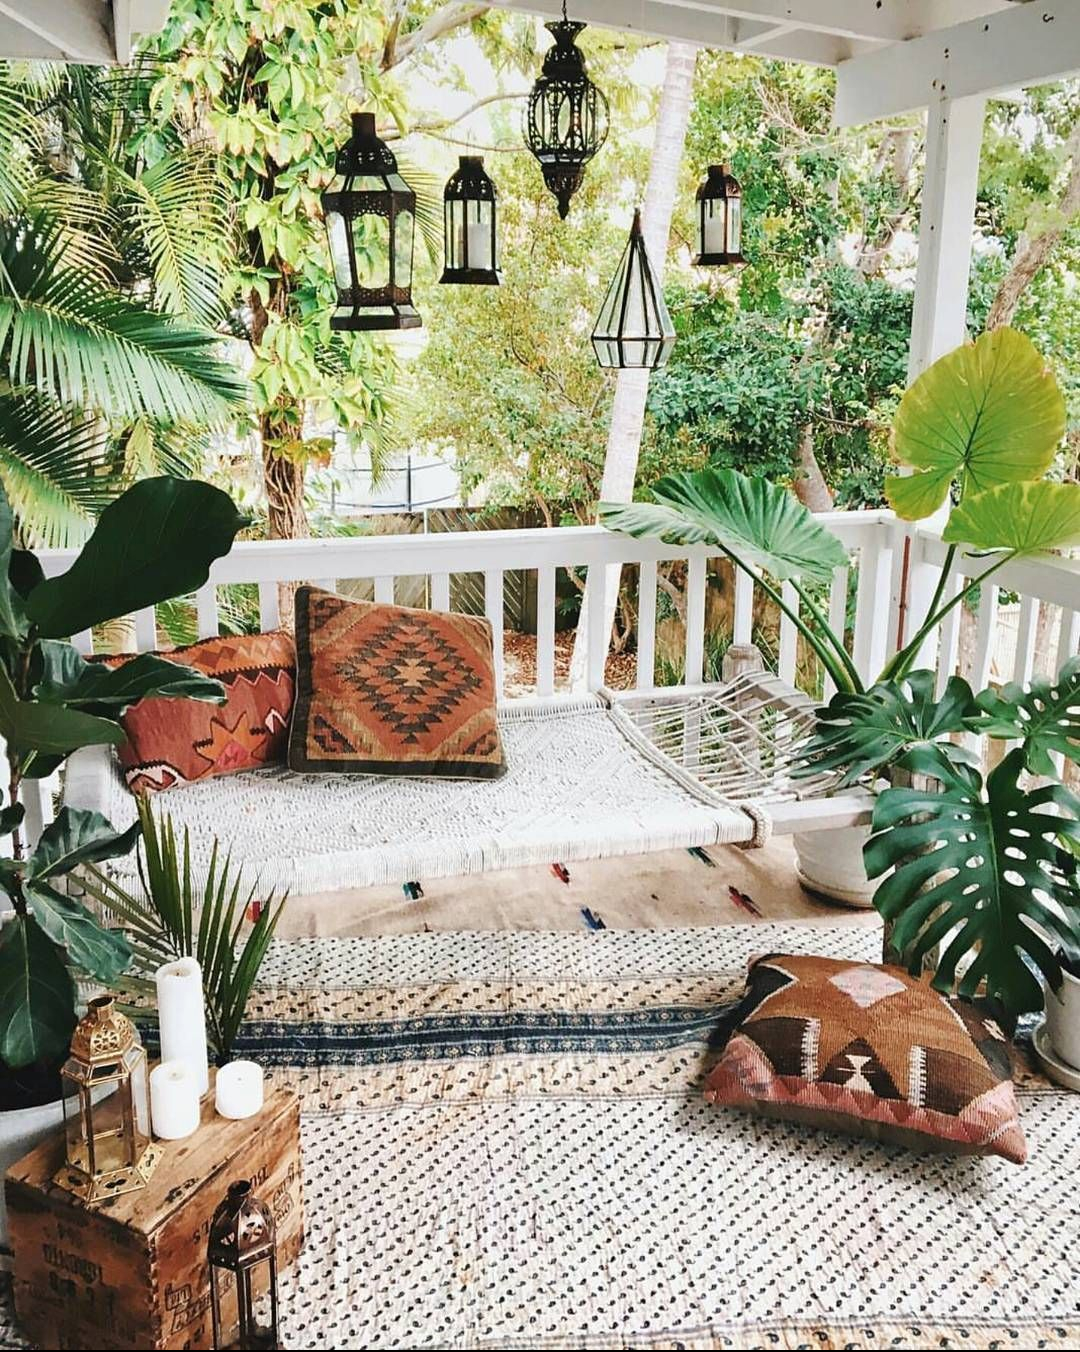 Outdoor Front Porch Ideas | Outdoor Decor | Outdoor Oasis Backyard | Super Chic Backyard Ideas | Outdoor Space Inspiration | Dream Backyard | 5 Tips for Creating a Cozy Outdoor Oasis at Your Home | Backyards that Inspire Me | Terrace | Porch | Patio Renovation | Patio Remodel | Best Decorated Small Backyards on Pinterest | Boho Patio Inspiration | Outdoor Furniture Inspiration | Bohemian Outdoor Decor